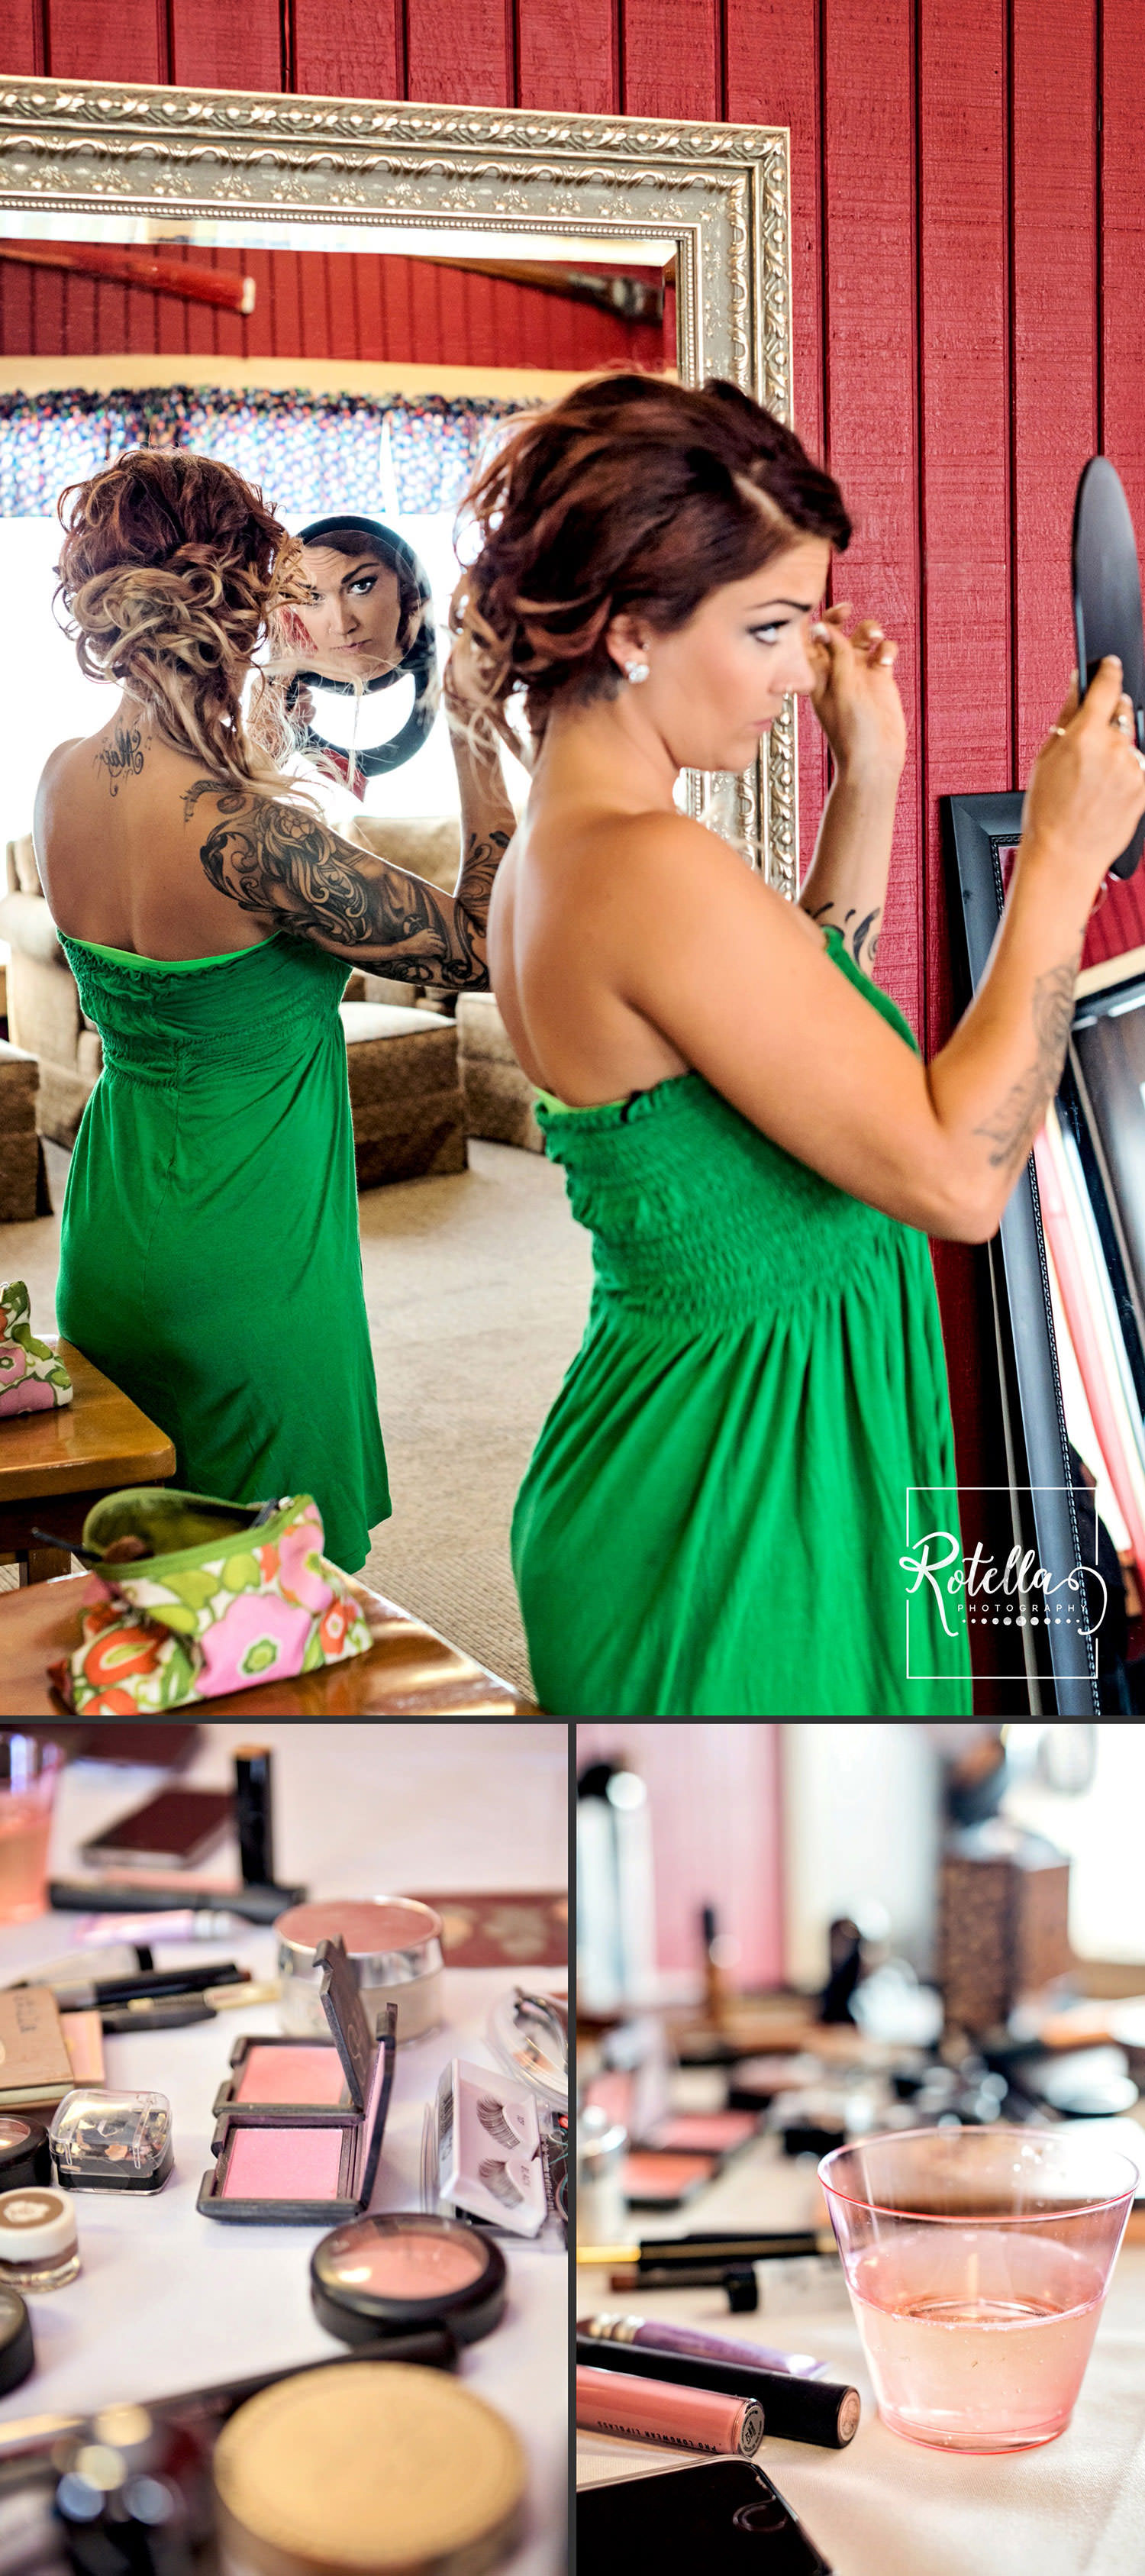 Bridesmaid in green dress putting on makeup by Rotella Photography